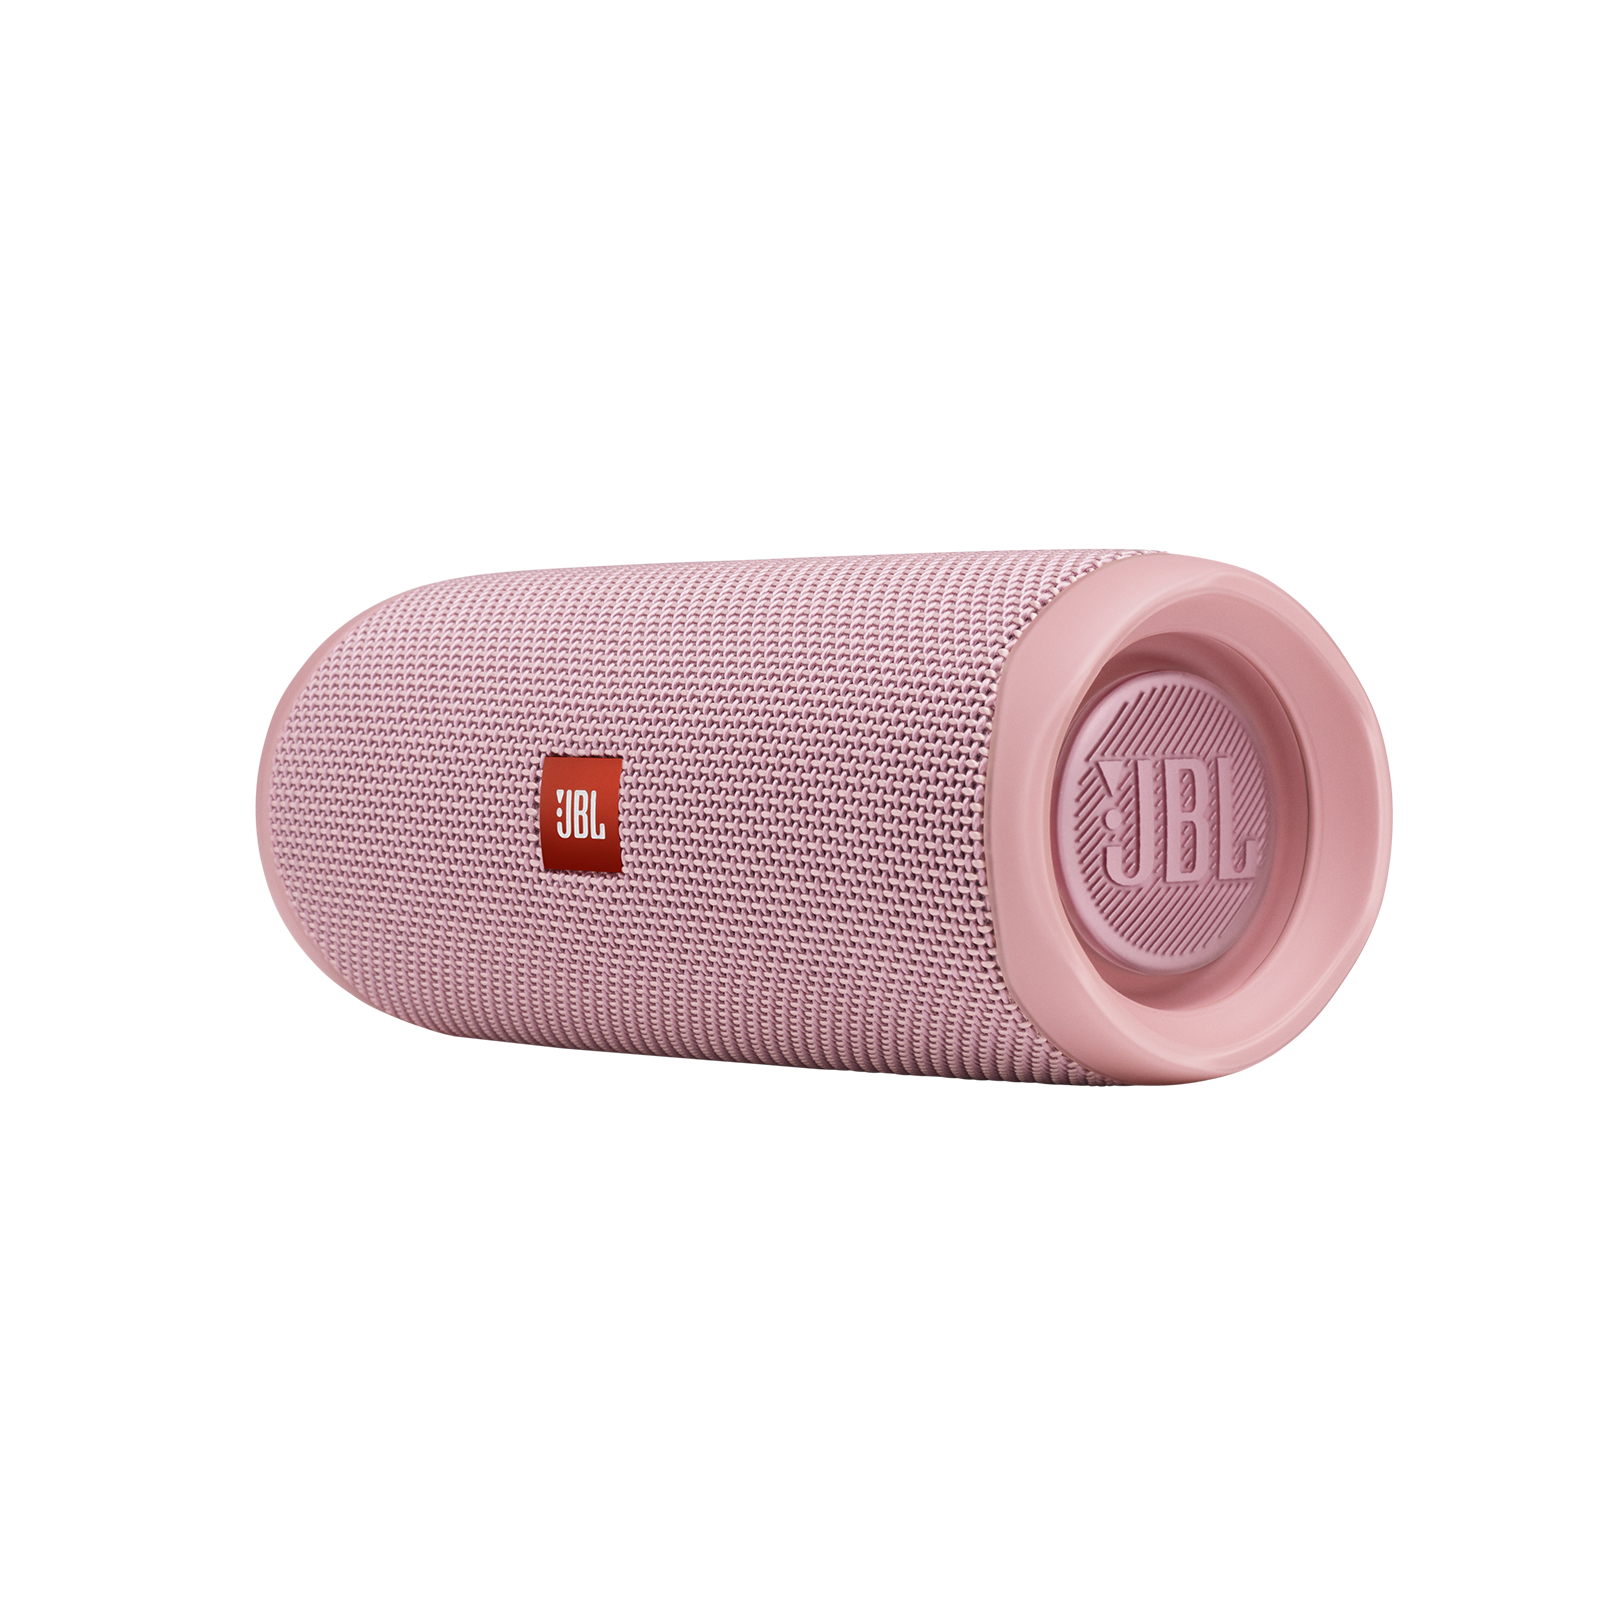 JBL FLIP 5 - Pink - Portable Waterproof Speaker - Detailshot 3